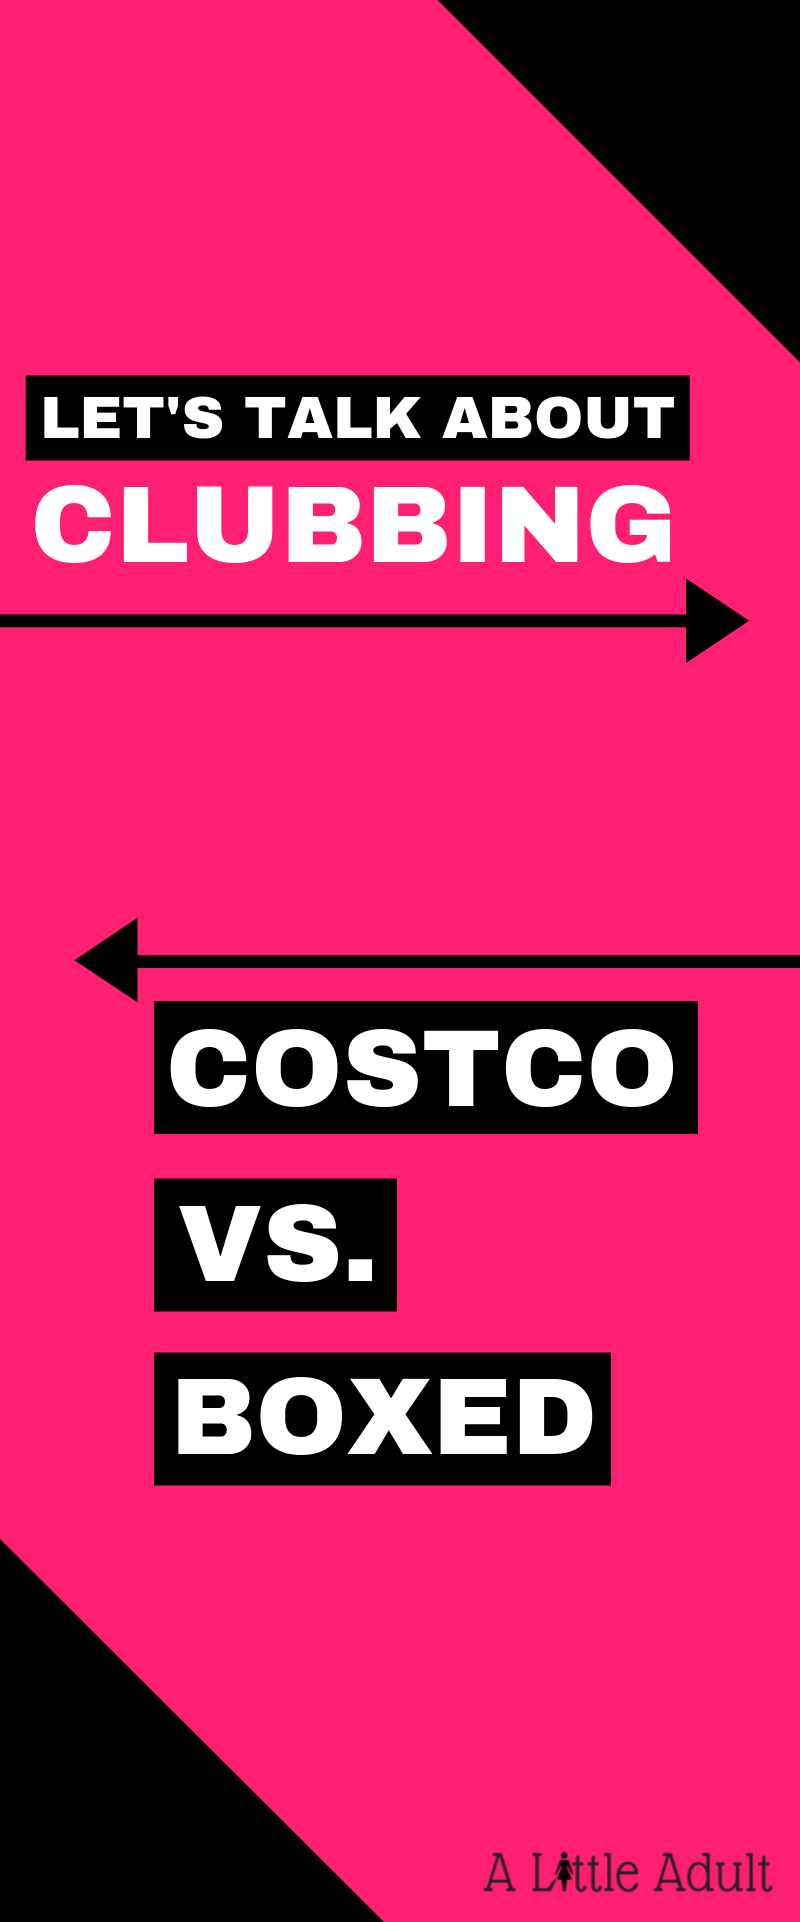 Costco vs Boxed.com